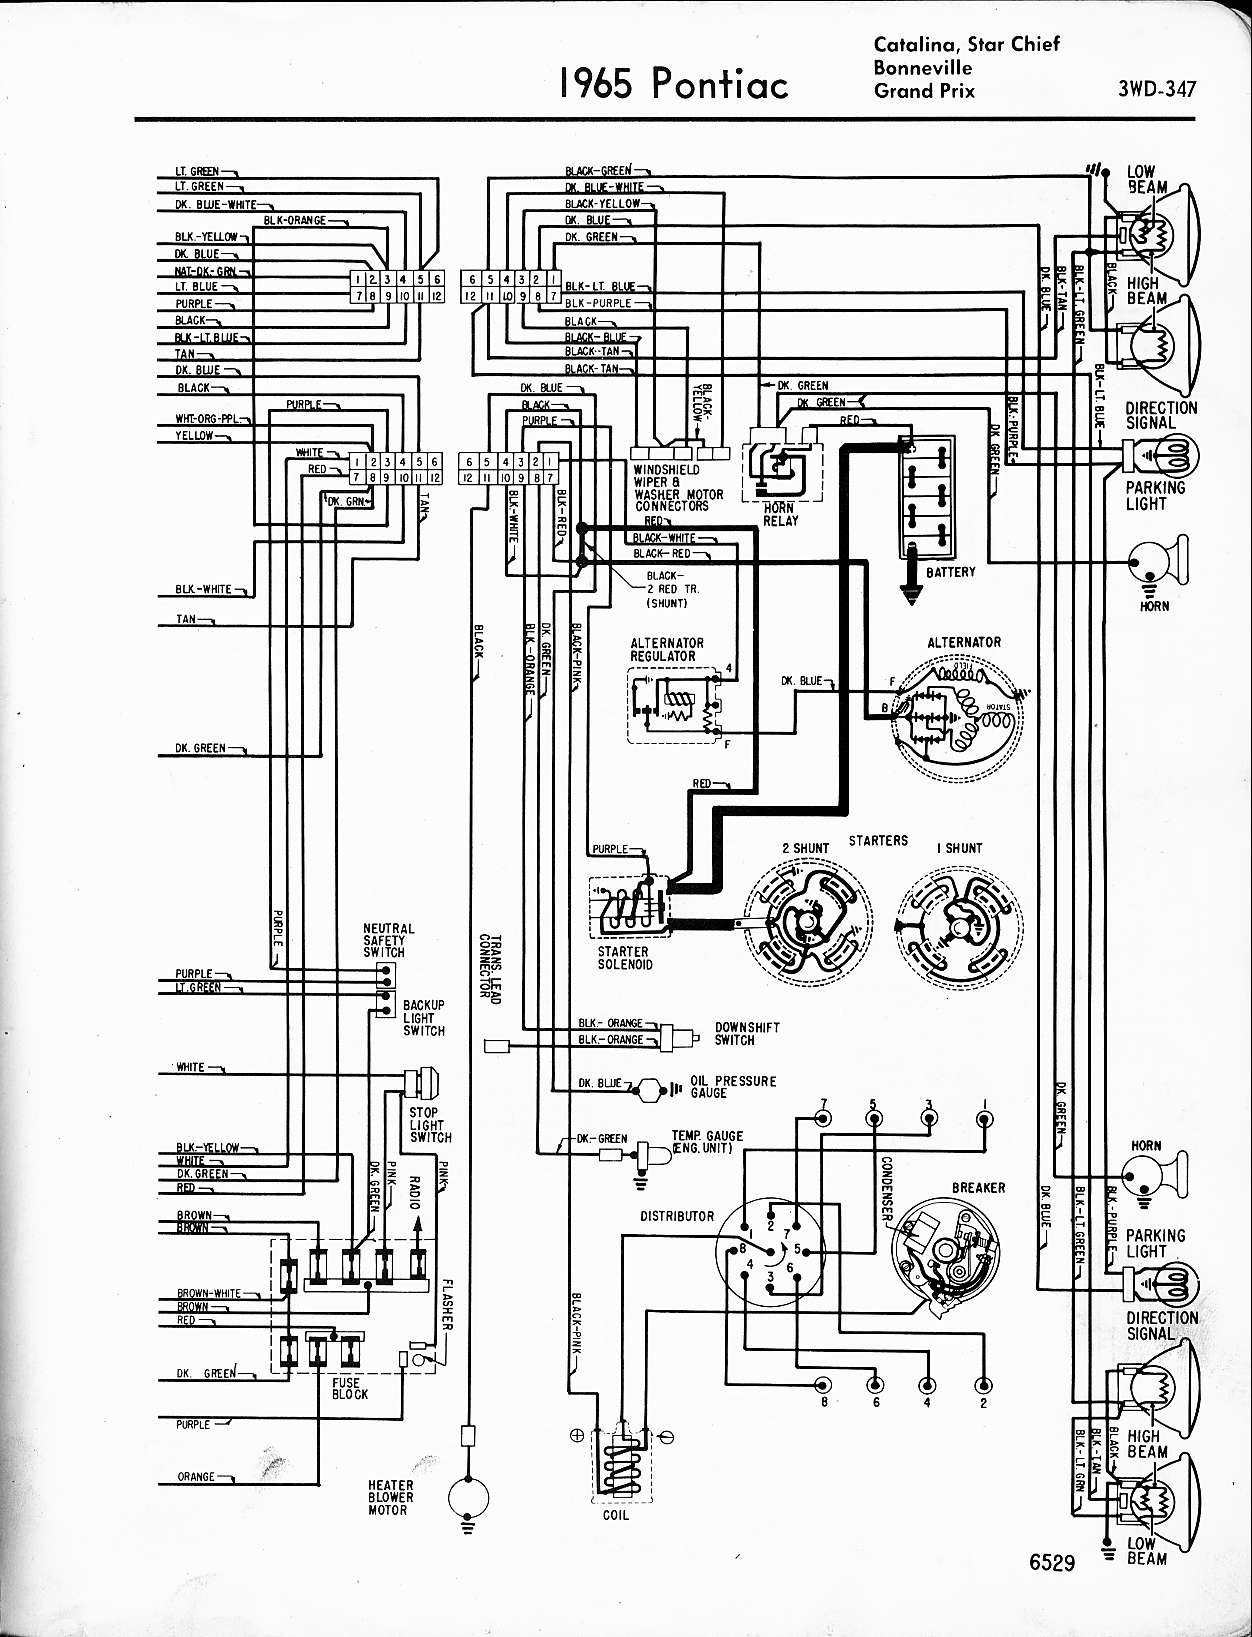 MWire5765 347 pontiac wiring diagrams pontiac grand prix wiring diagrams \u2022 free pontiac grand prix wiring diagrams at gsmx.co